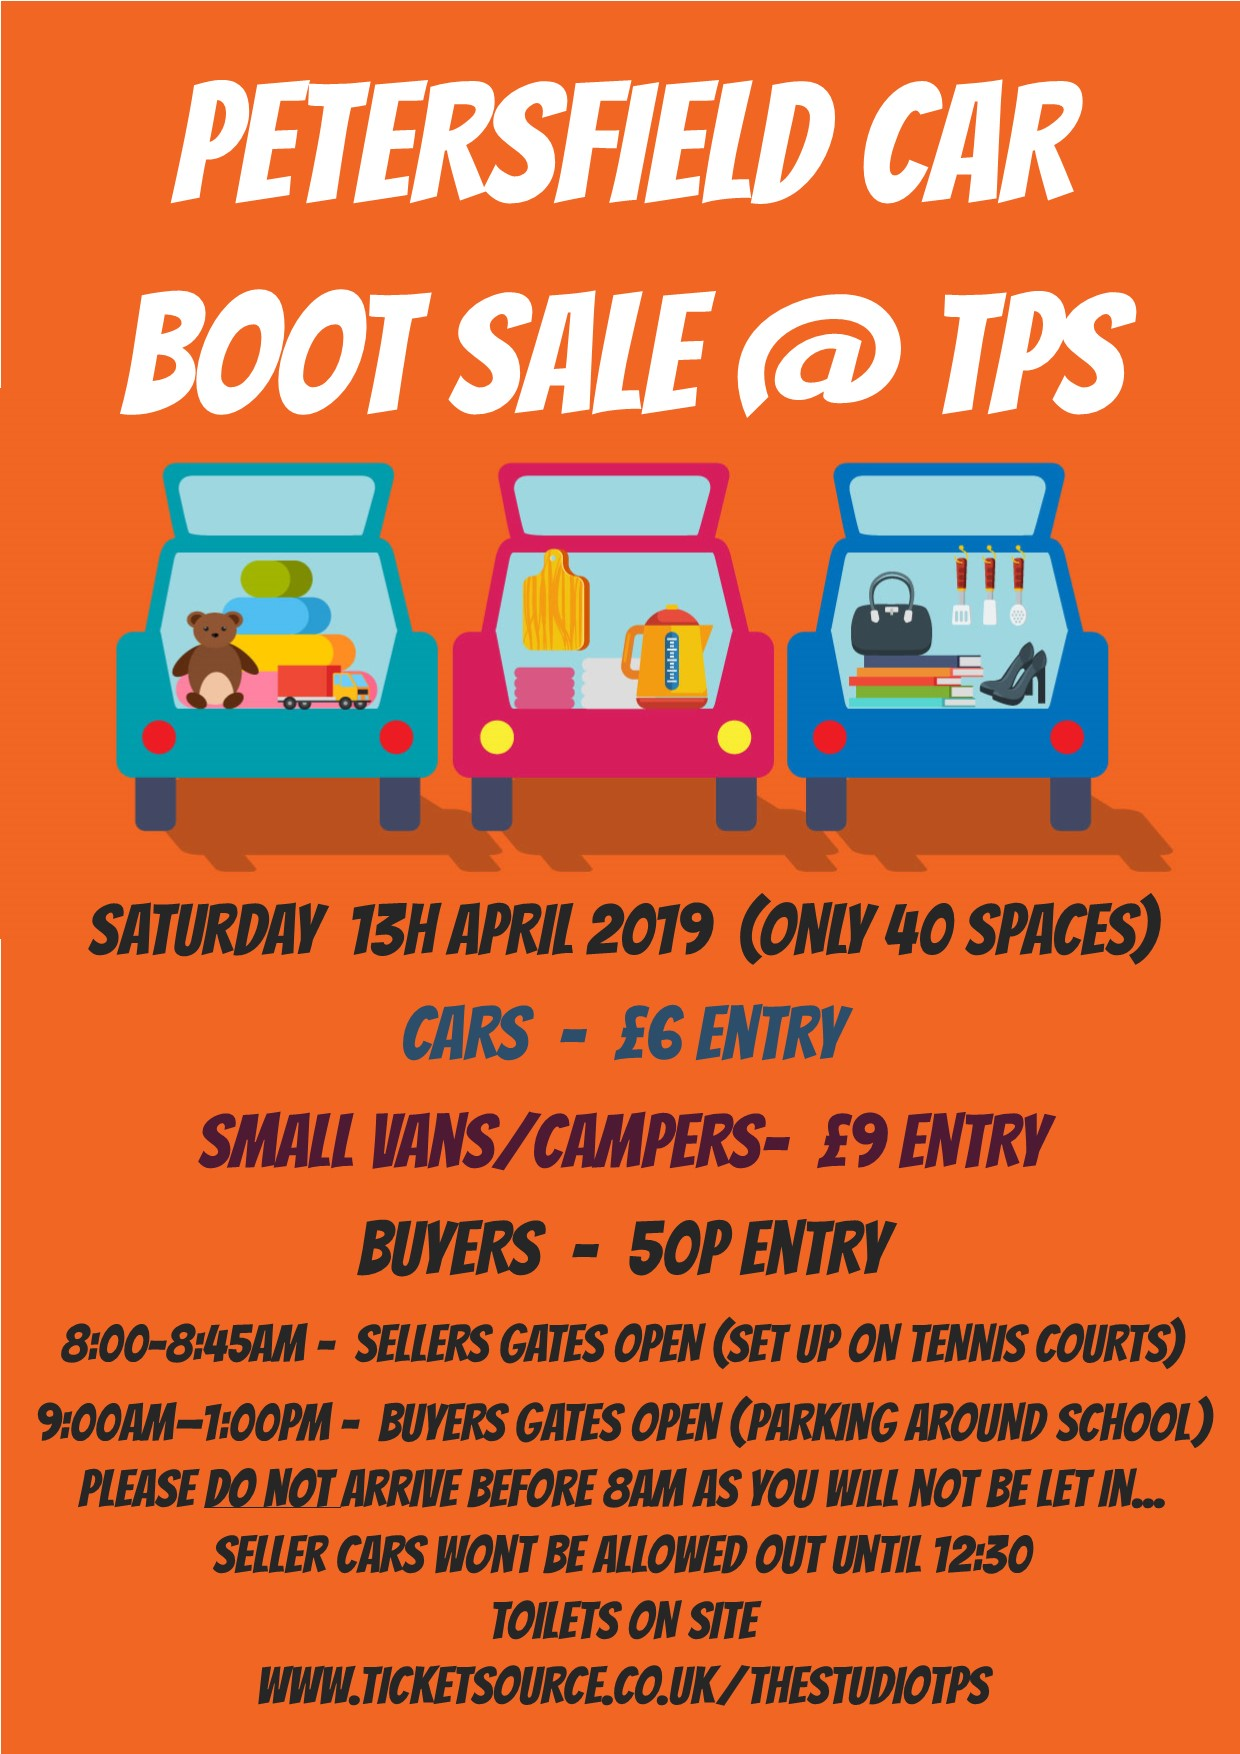 Petersfield Car Boot Sale Tps At Tennis Courts The Petersfield